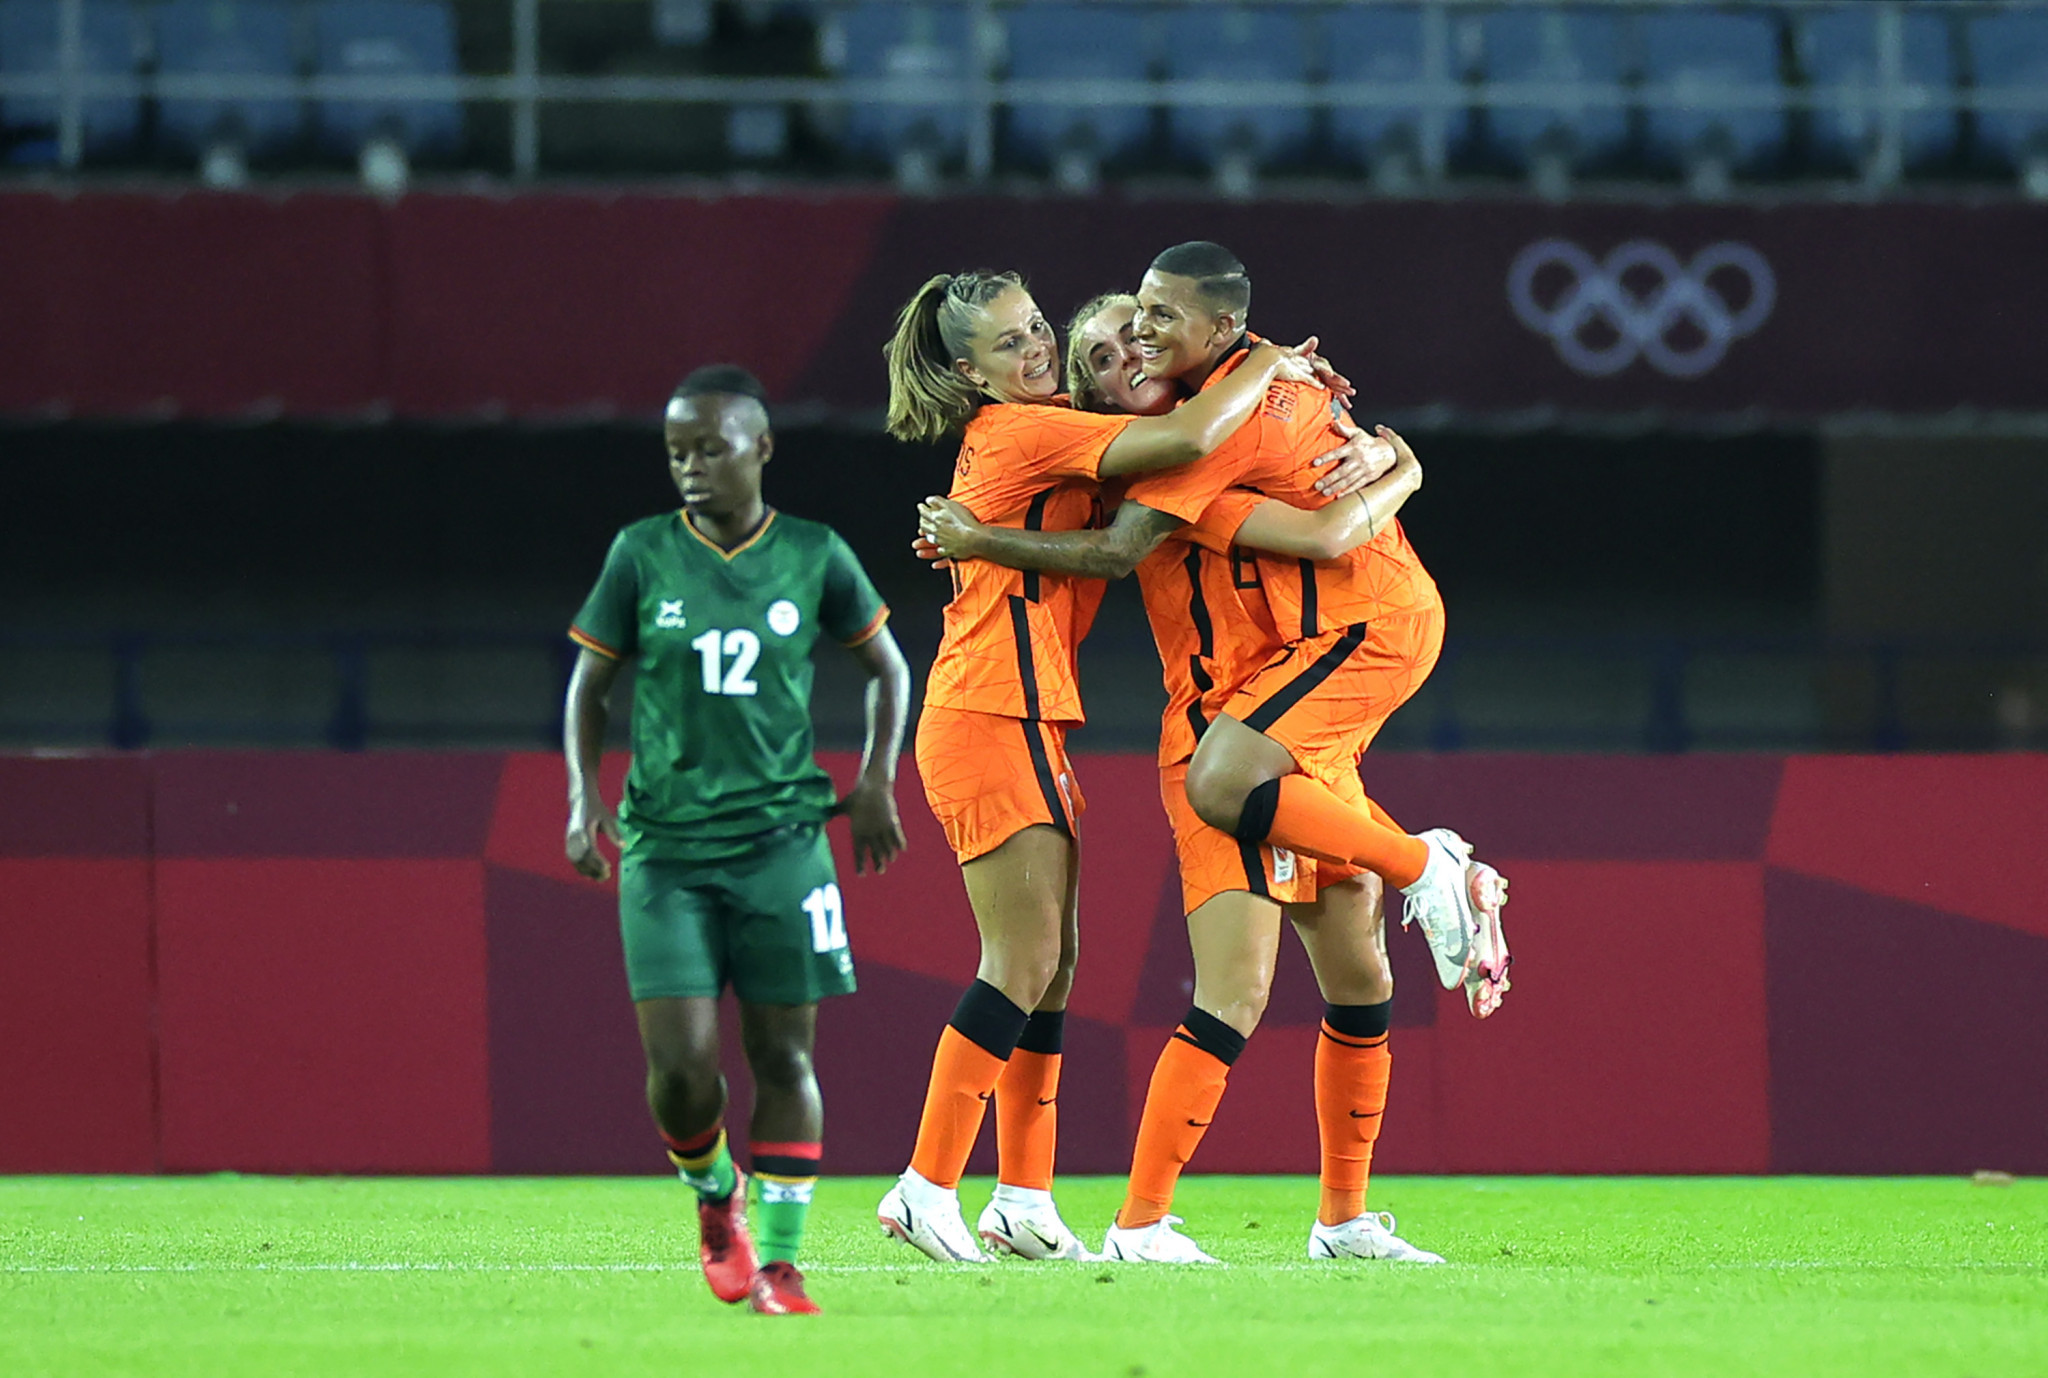 The Netherlands scored 10 goals against Zambia ©Getty Images